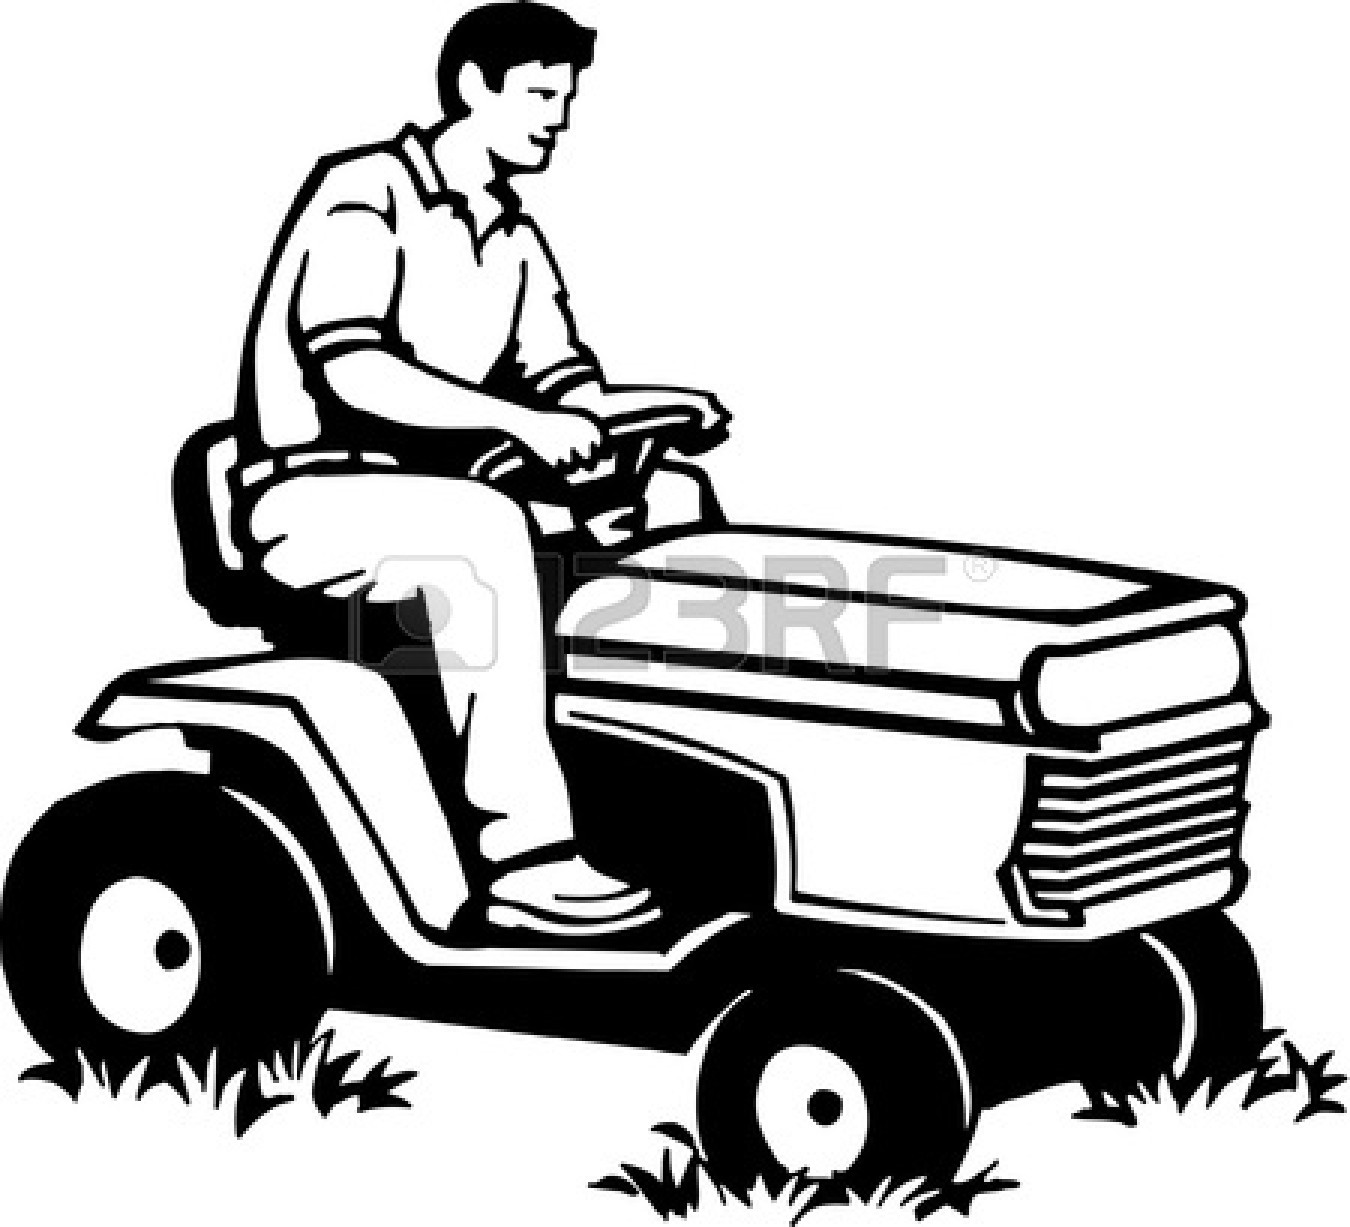 Free Lawn Mower Clipart Free Download Best Free Lawn Mower Clipart